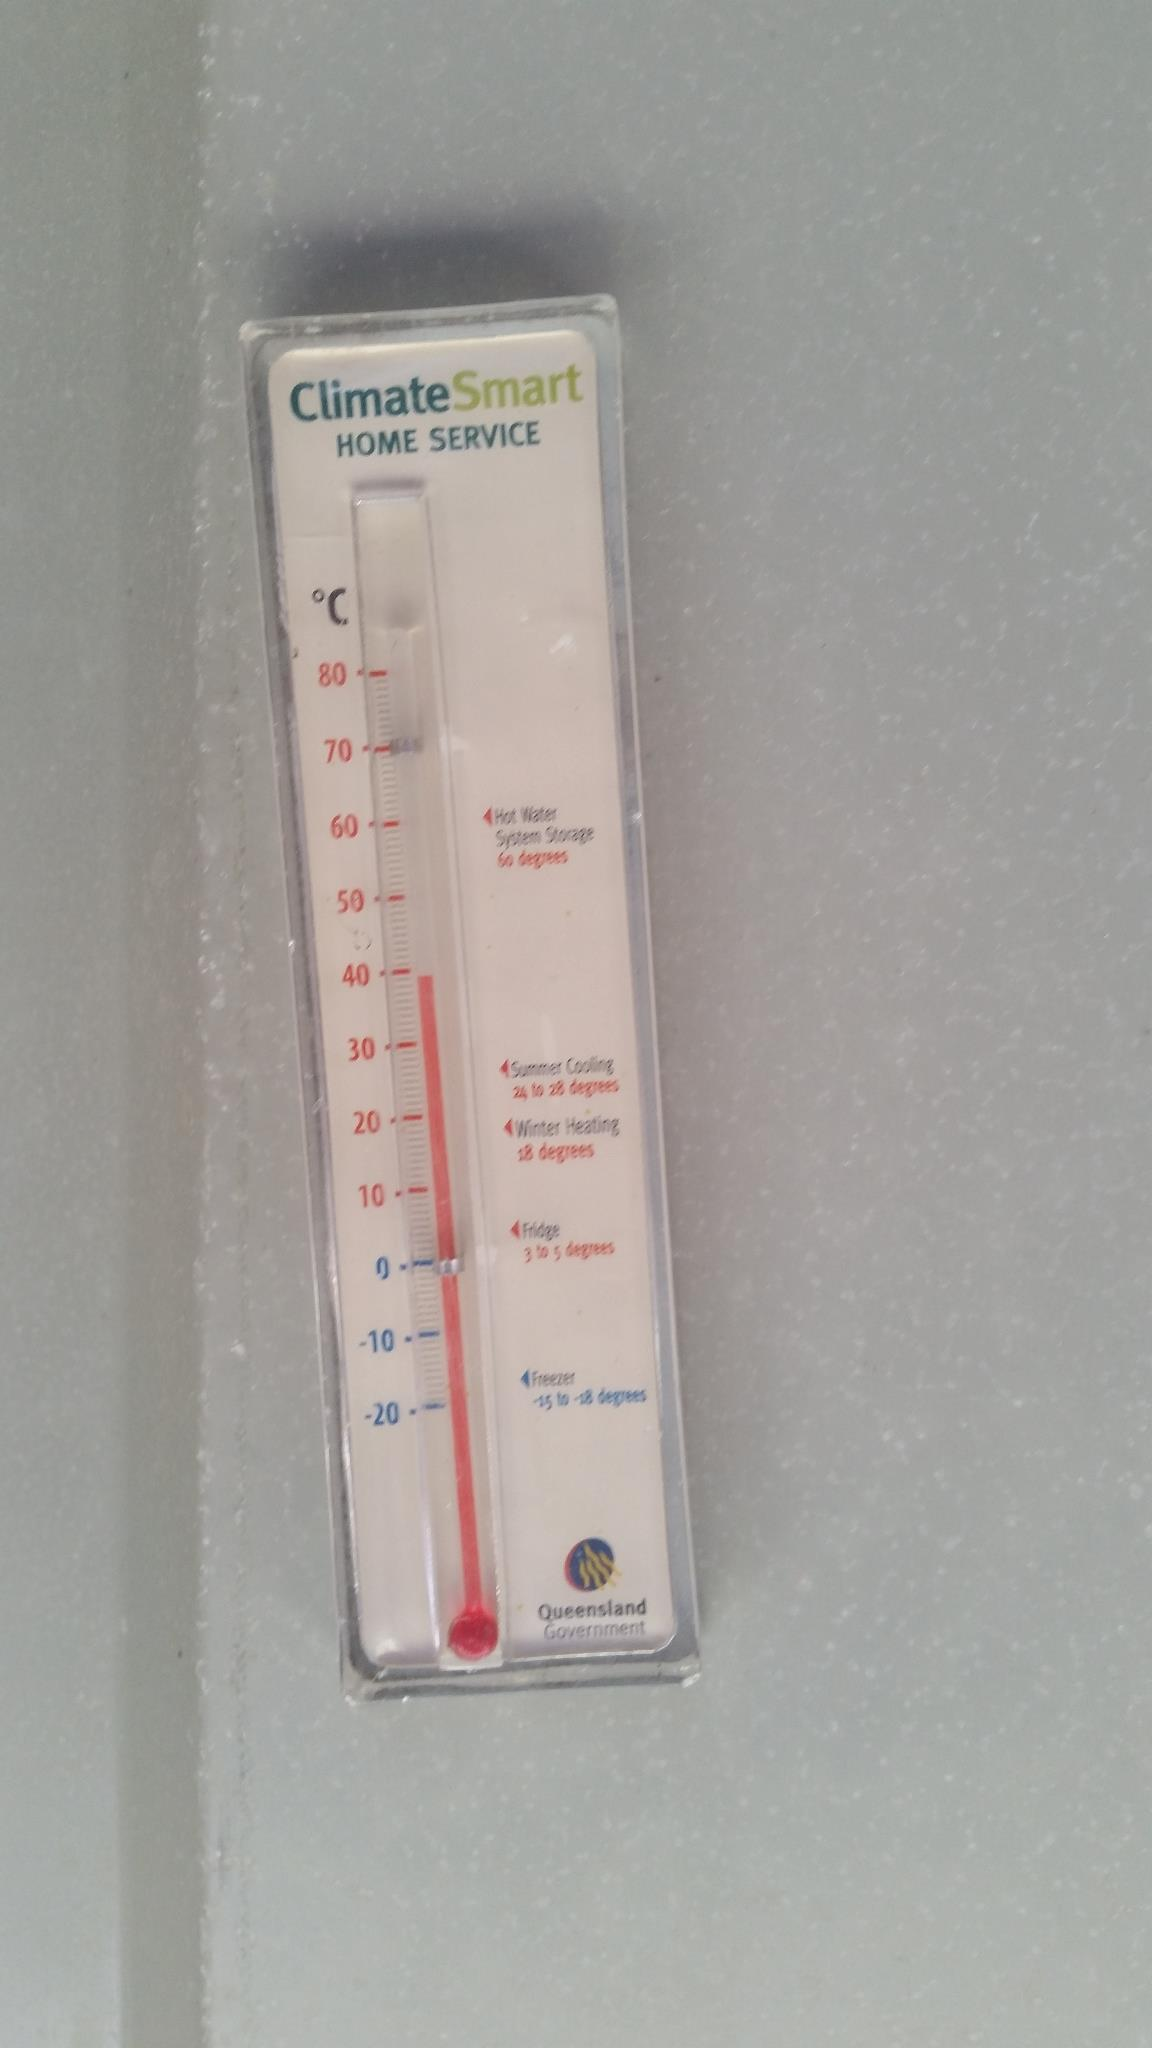 Temperature of the deck roof